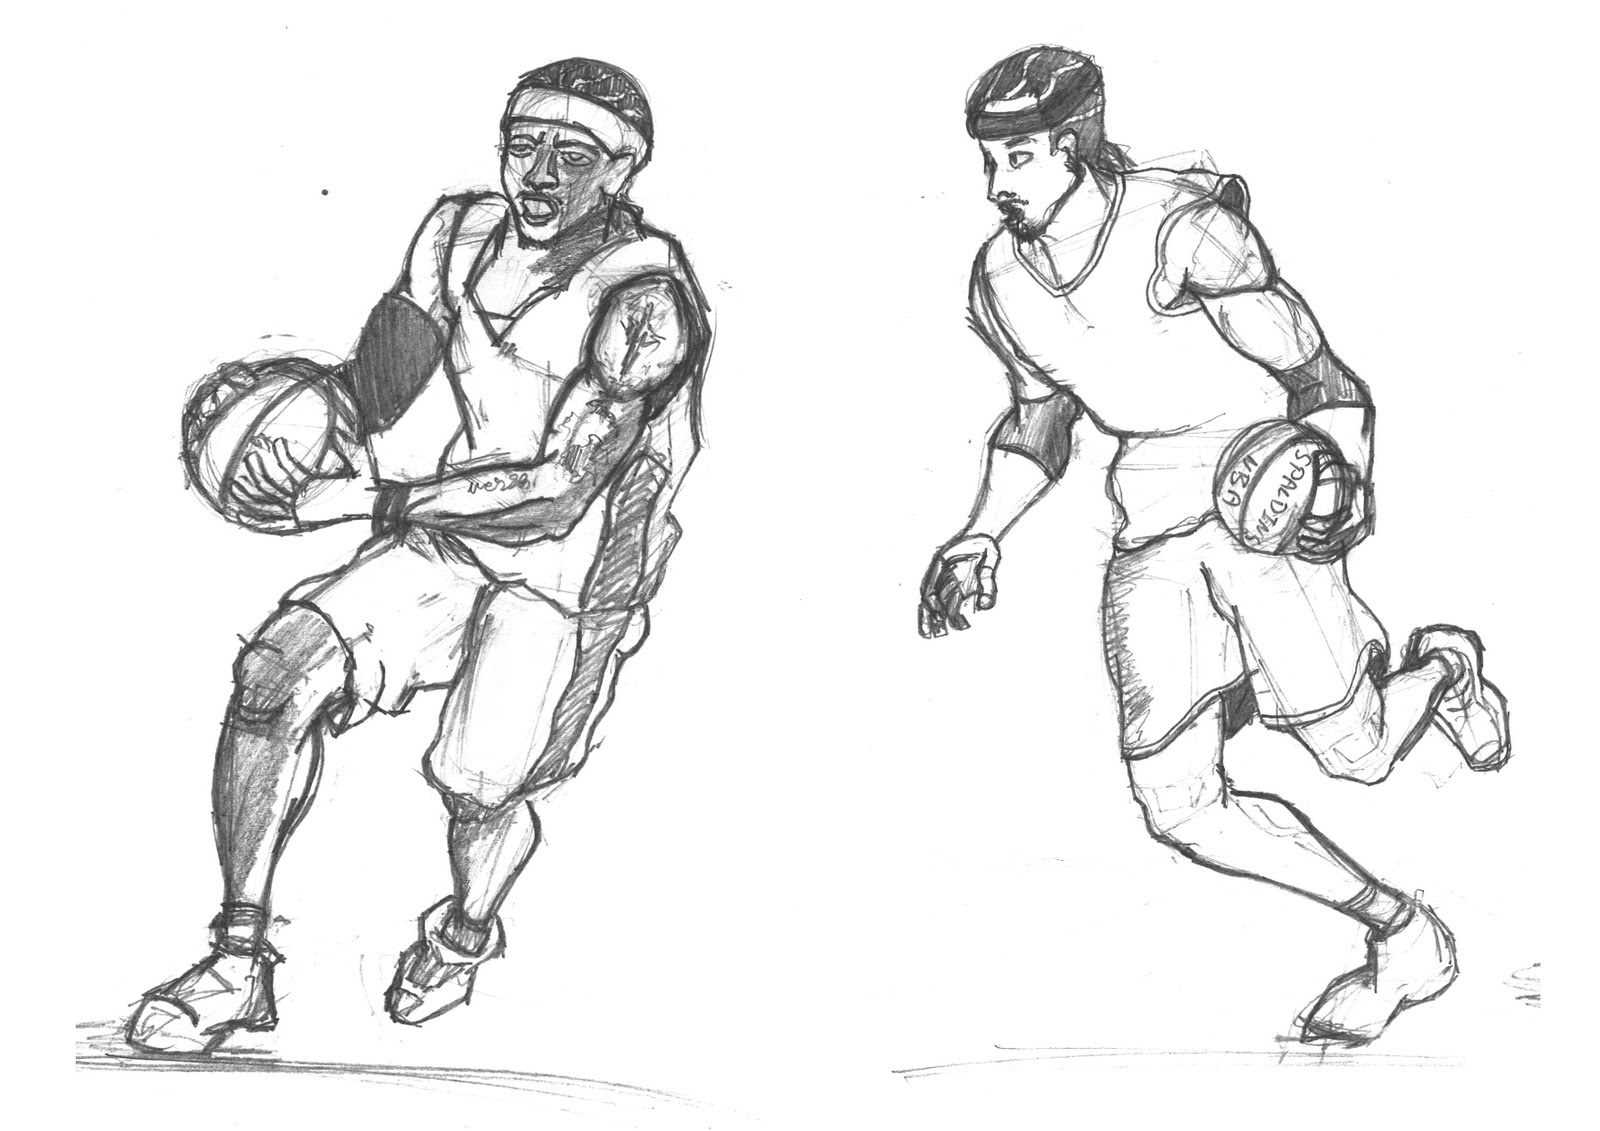 Basketball Player Sketches | Www.pixshark.com - Images Galleries With A Bite!